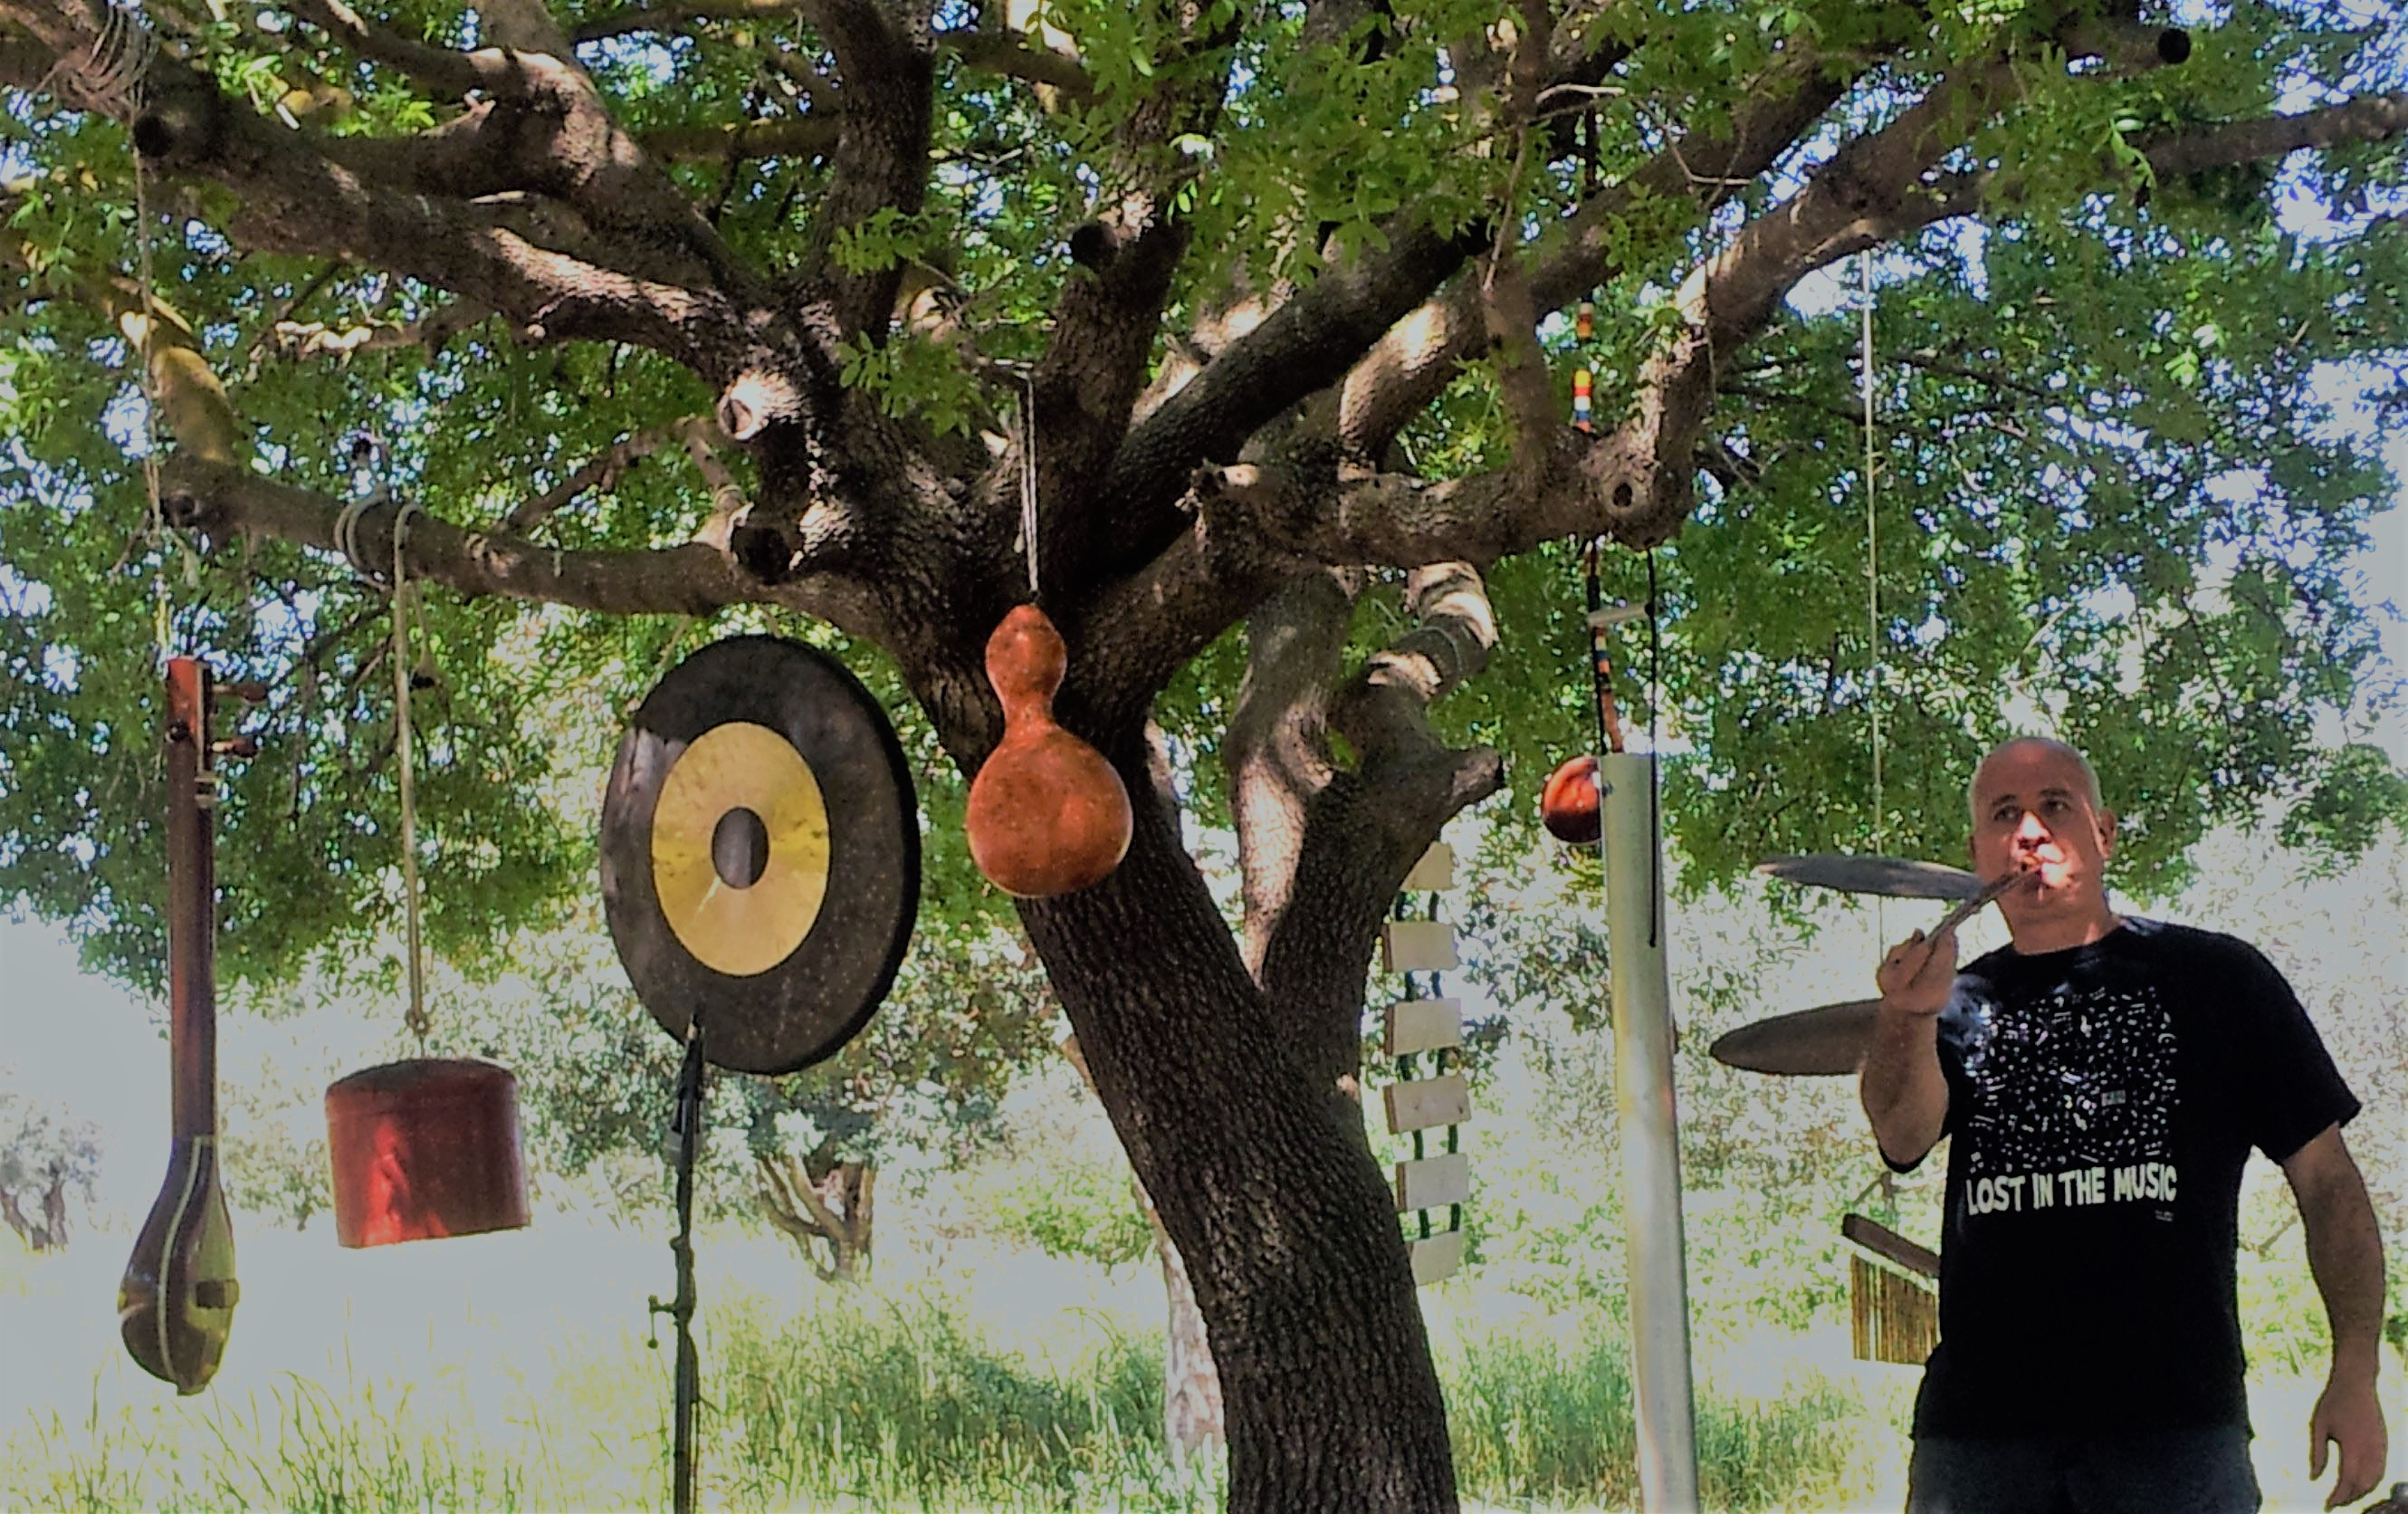 sound from the tree